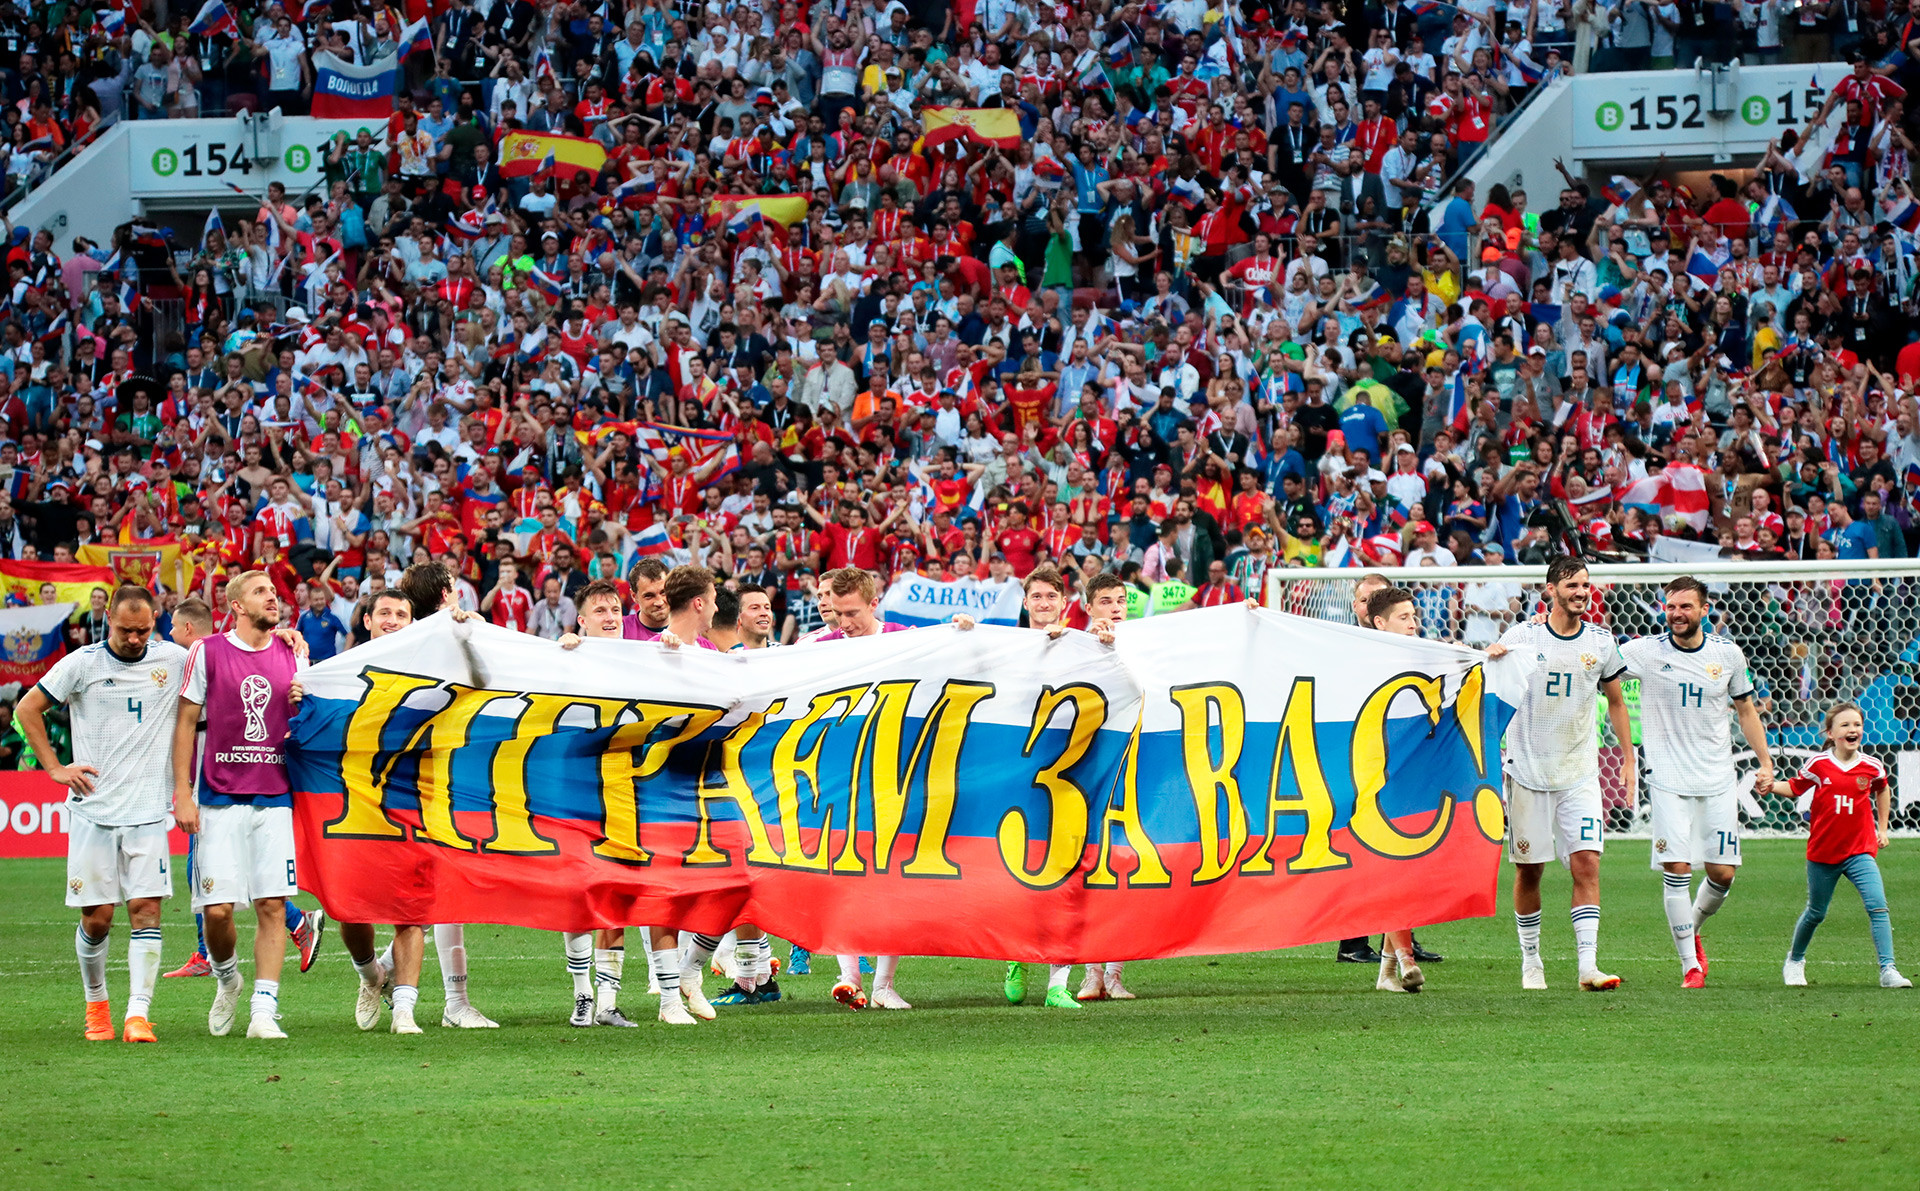 Team Russia's players carrying the banner